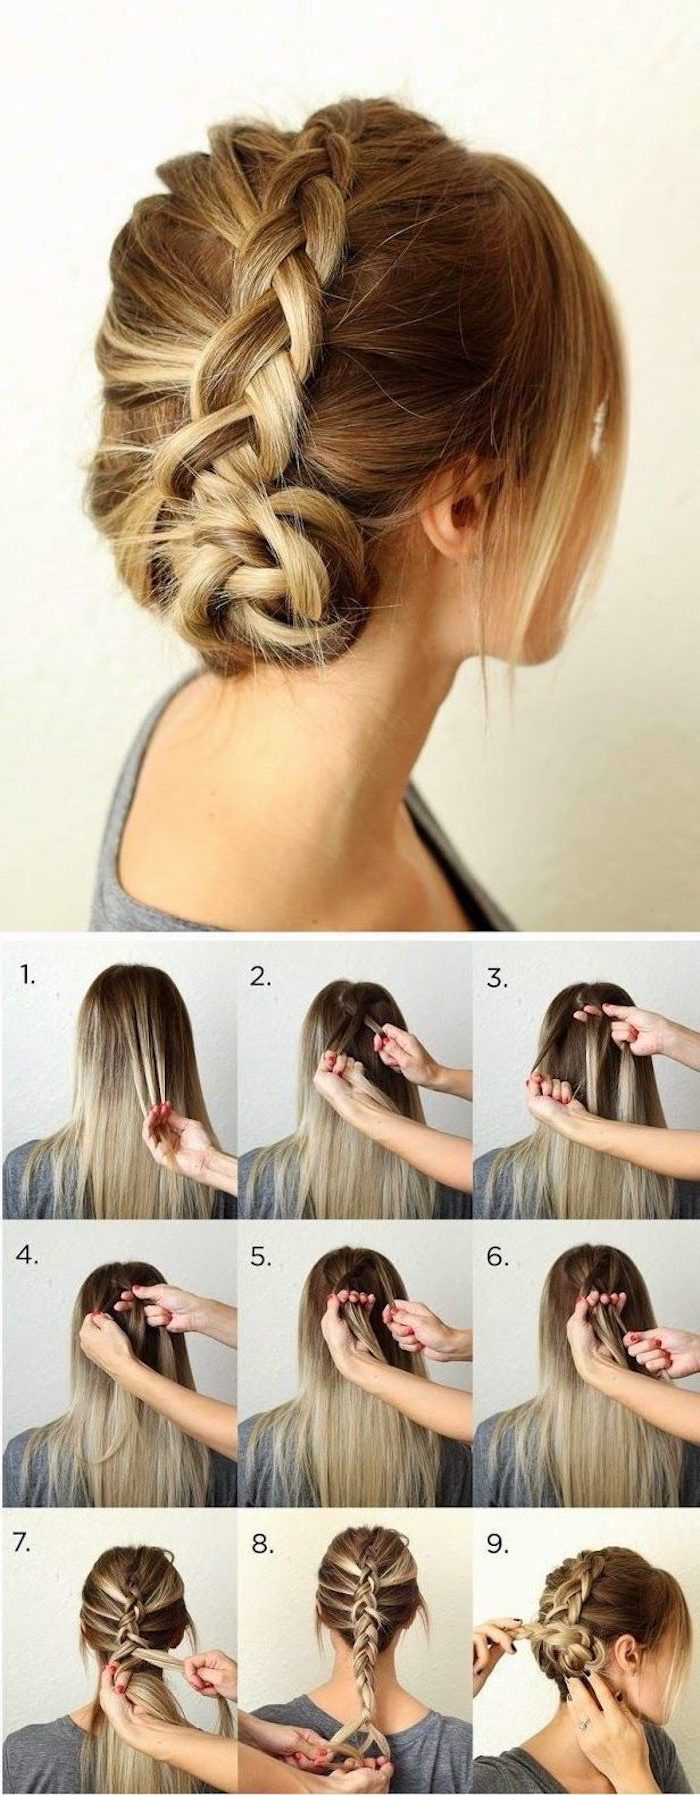 blonde hair, braided updo, step by step, diy tutorial, half up half down braid